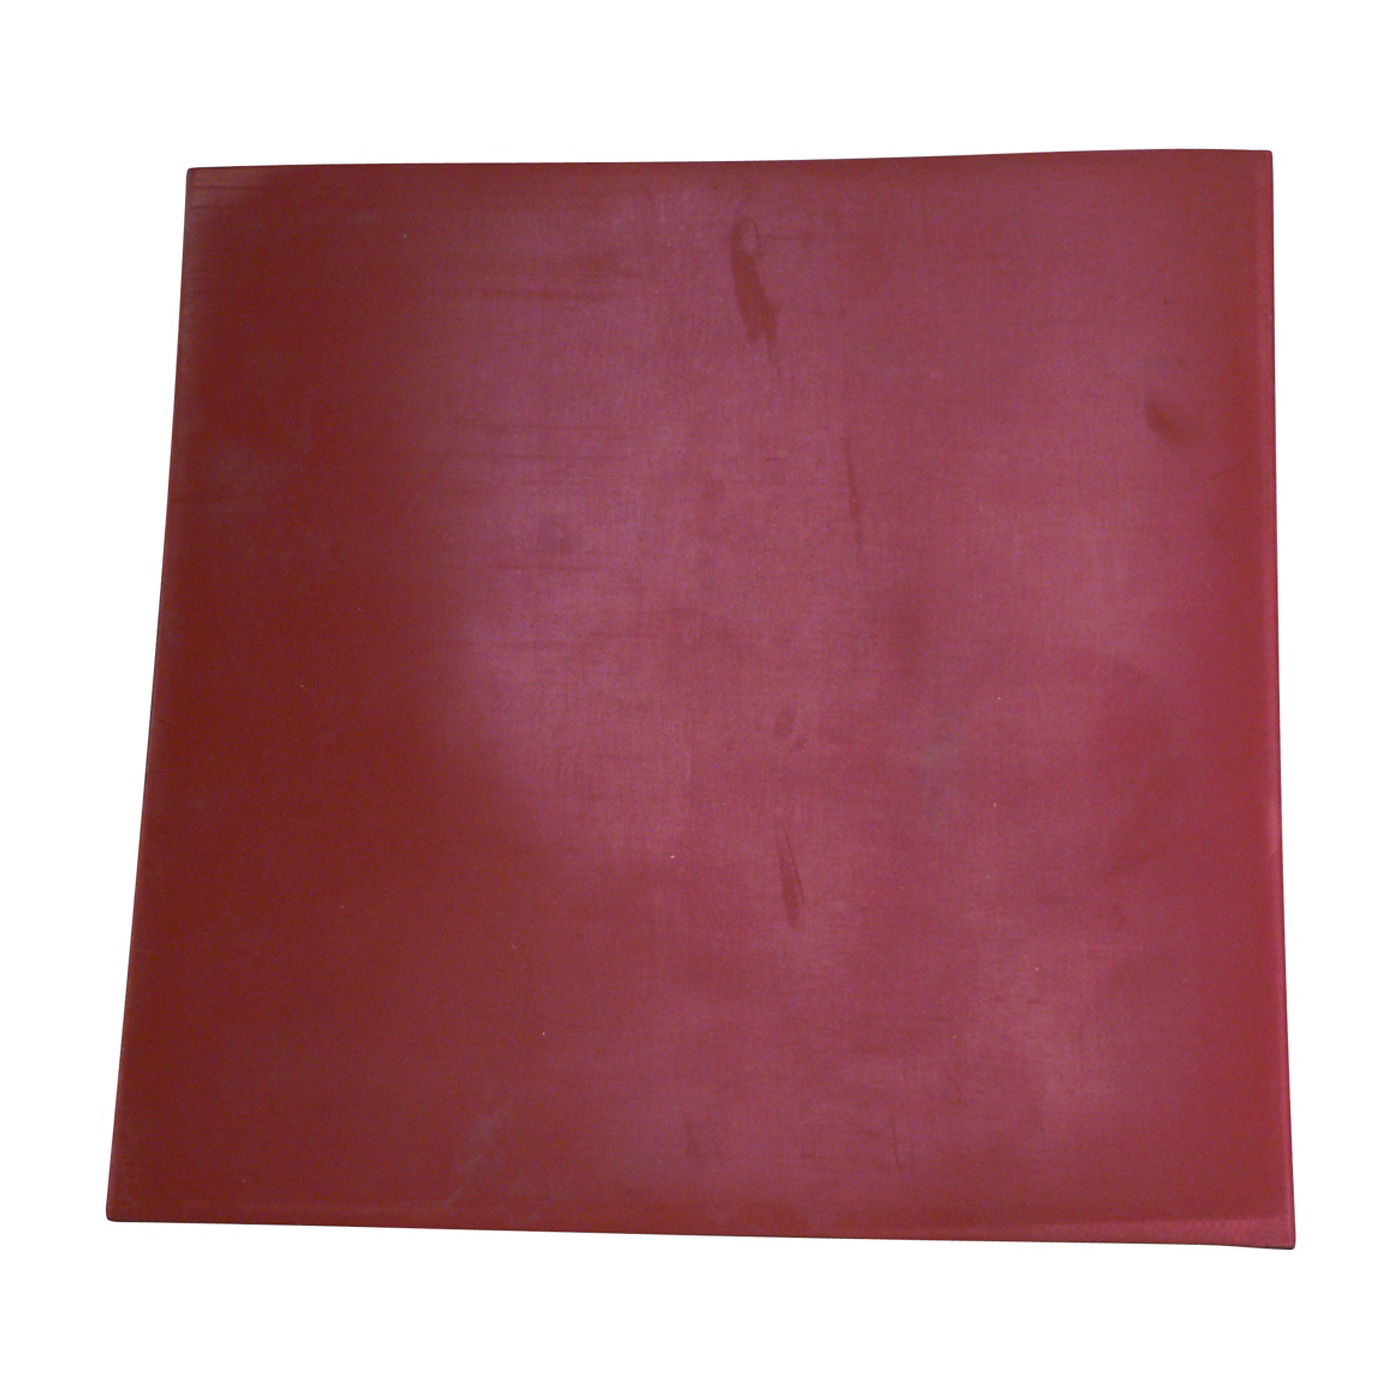 Picture of Plumb Pak PP855-41 Packing Sheet, Individual Square, Rubber, Red